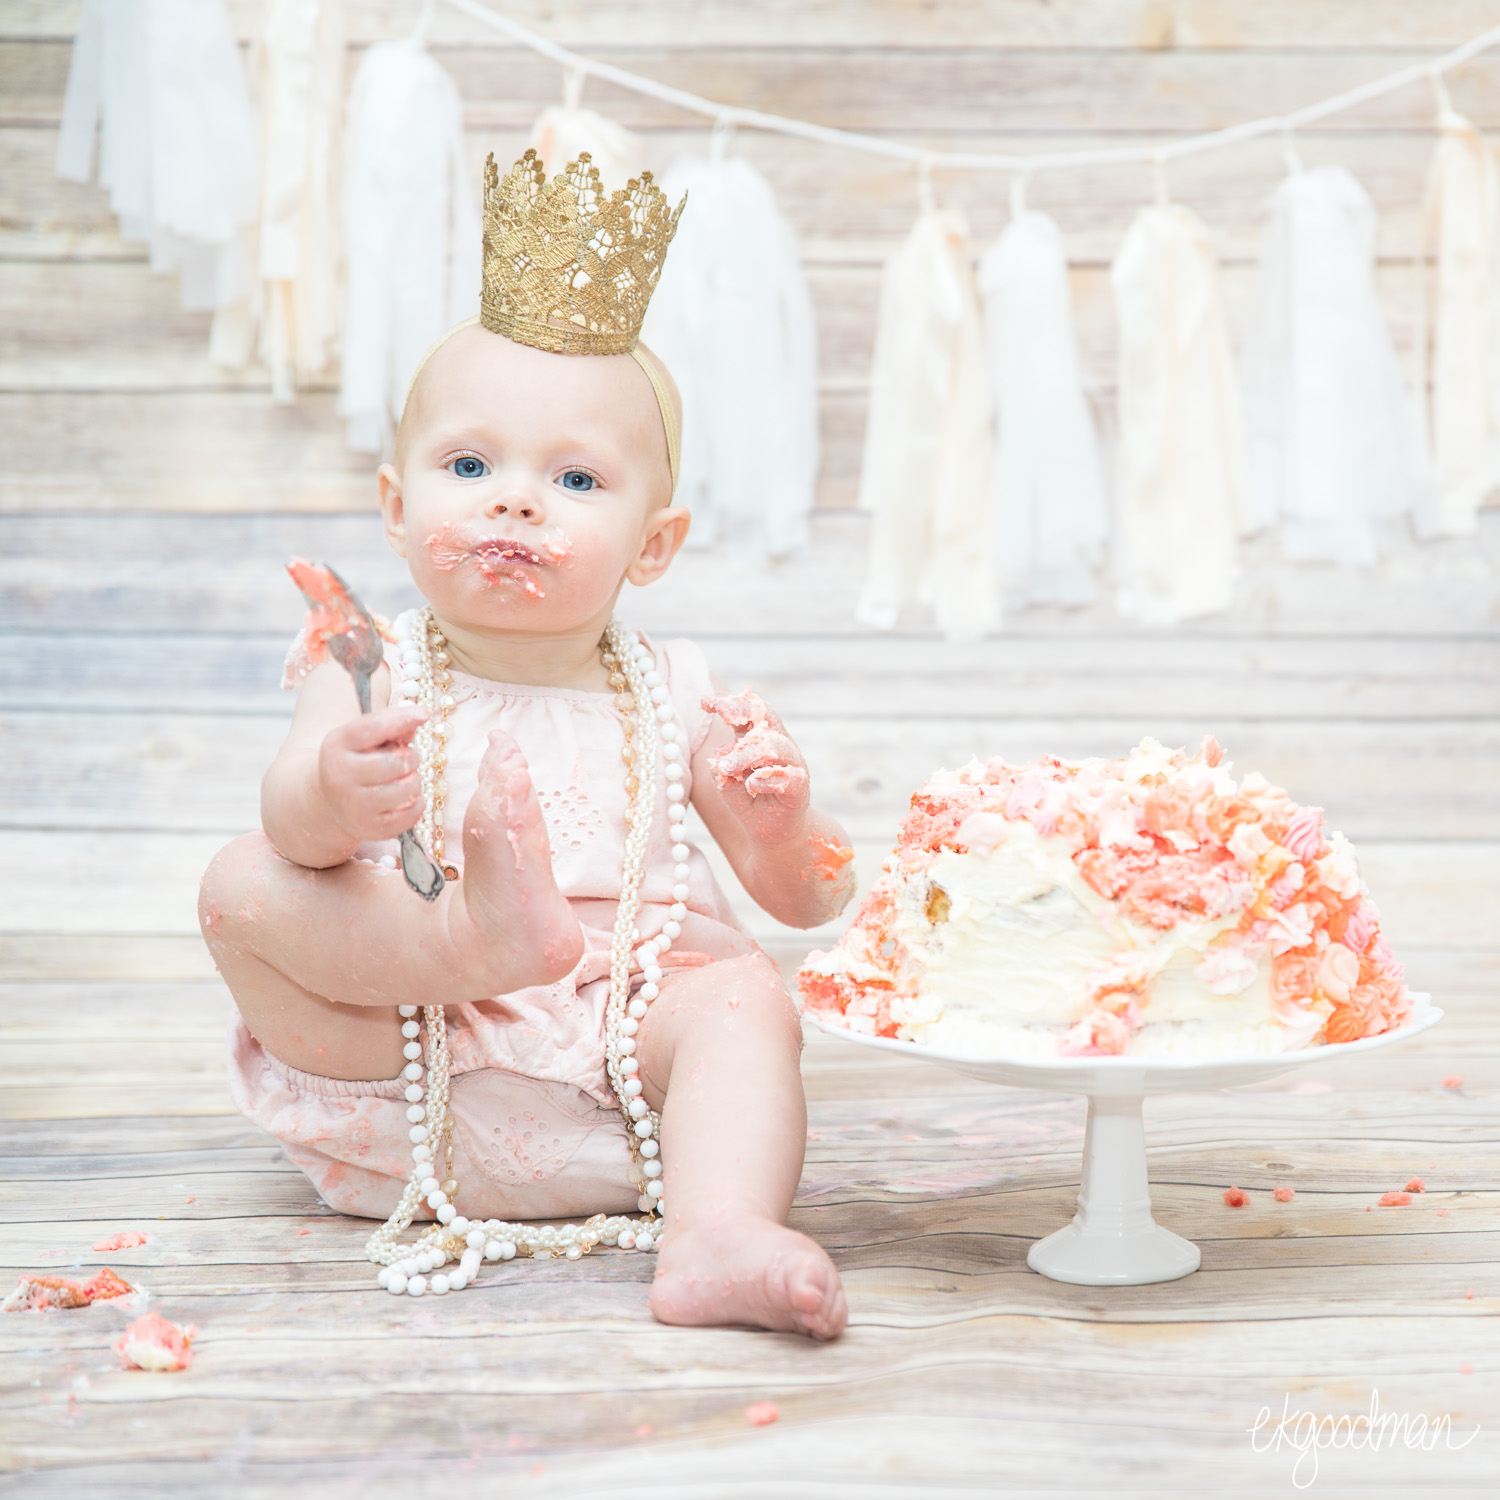 You can have your cake and eat it too - Vintage and pearls and a first birthday cake smash fit for a princess!